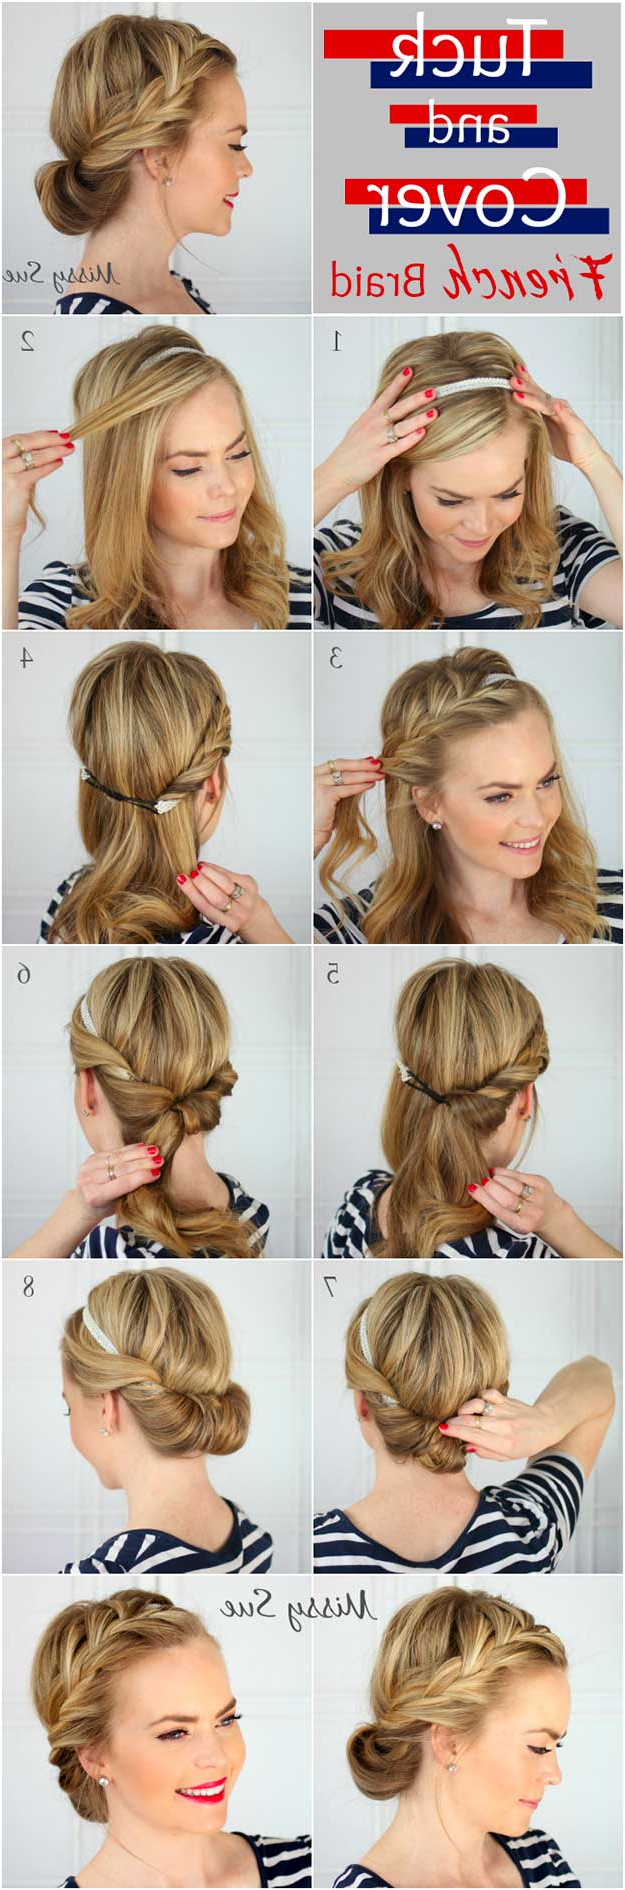 39 Best Summer Hairstyles – The Goddess Pertaining To Summer Hairstyles For Short Hair (View 11 of 25)